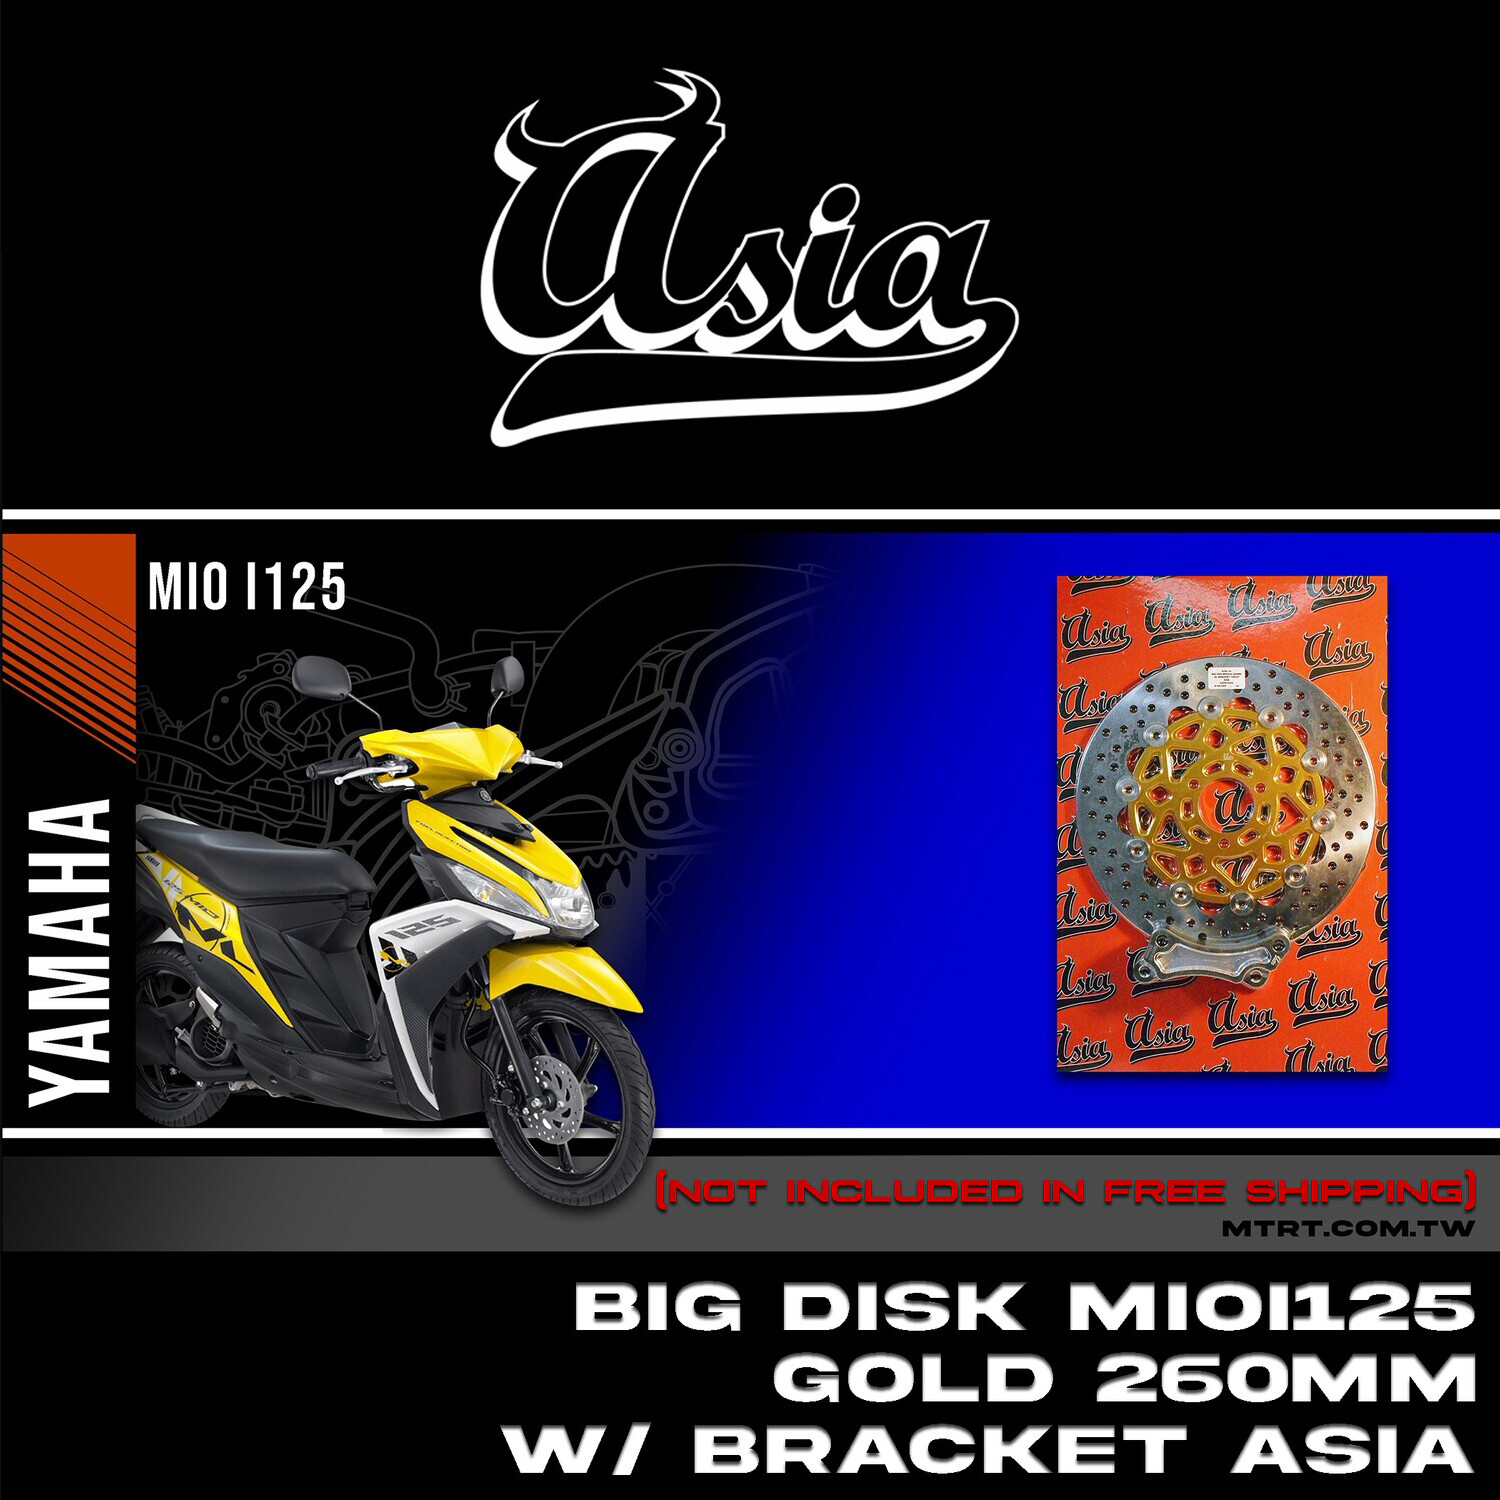 BIG DISK MIOi125 Gold  260MM with bracket ASIA